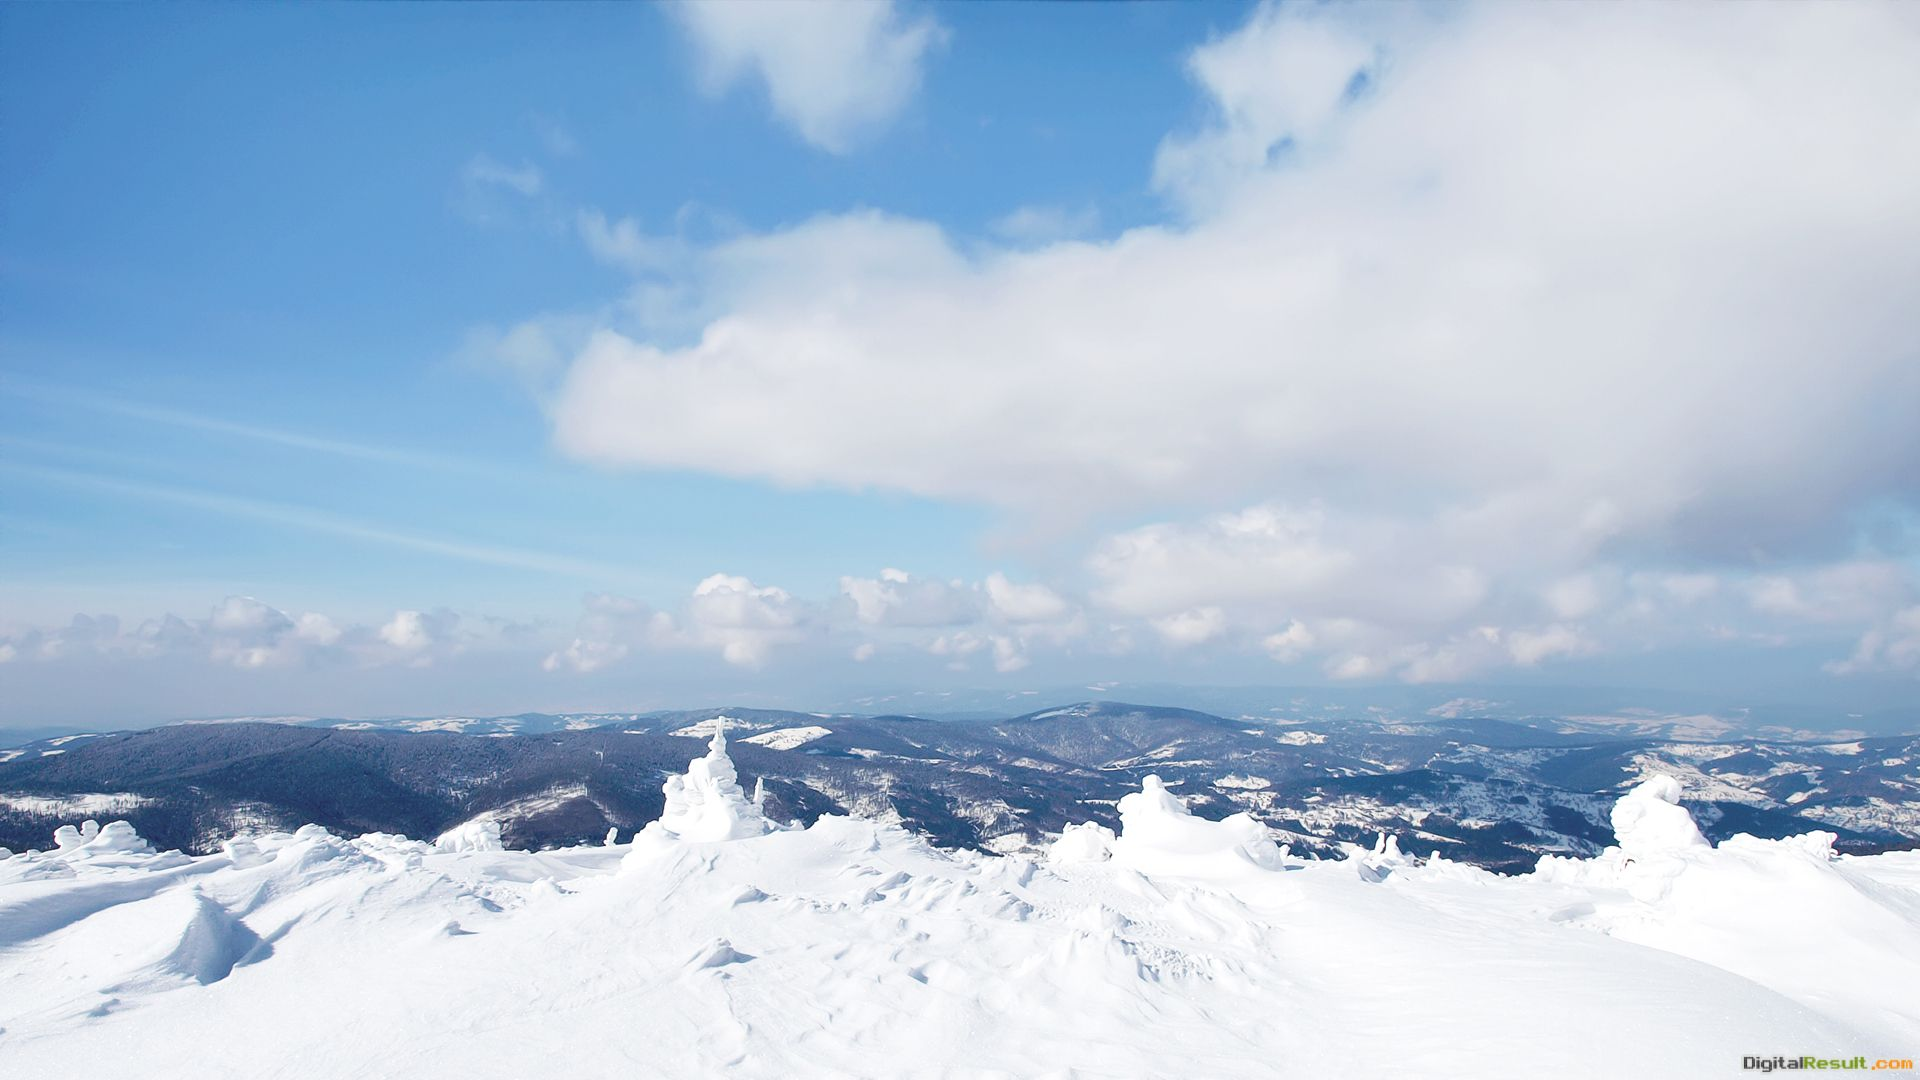 winter snow snow mountains sky obloka wallpapers wallpapers nature jpg 686